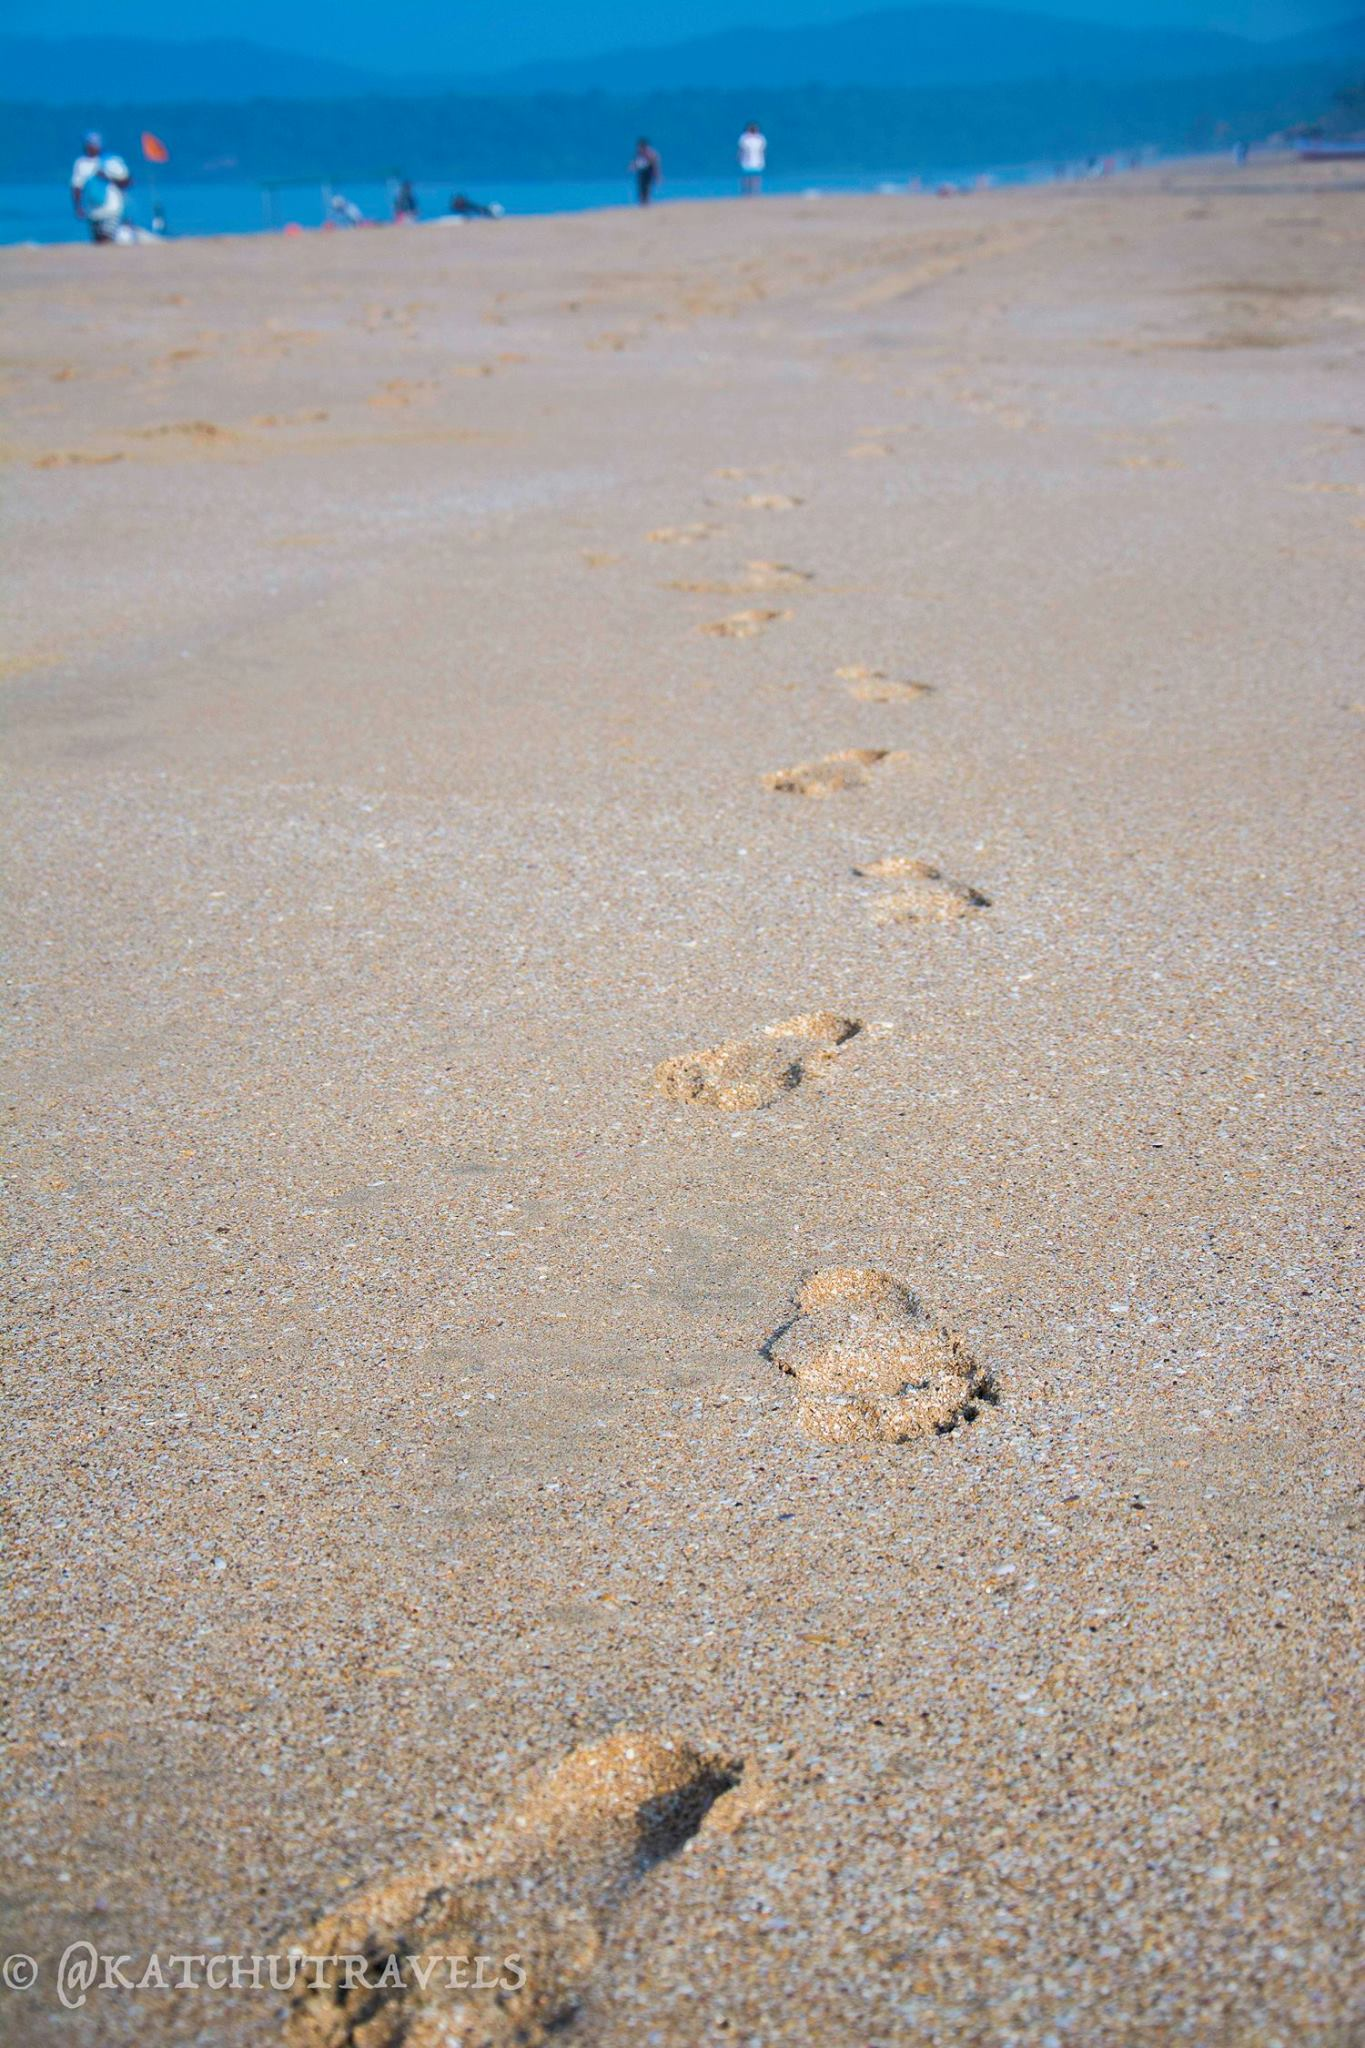 Lesser footprints and even lesser digital footprints